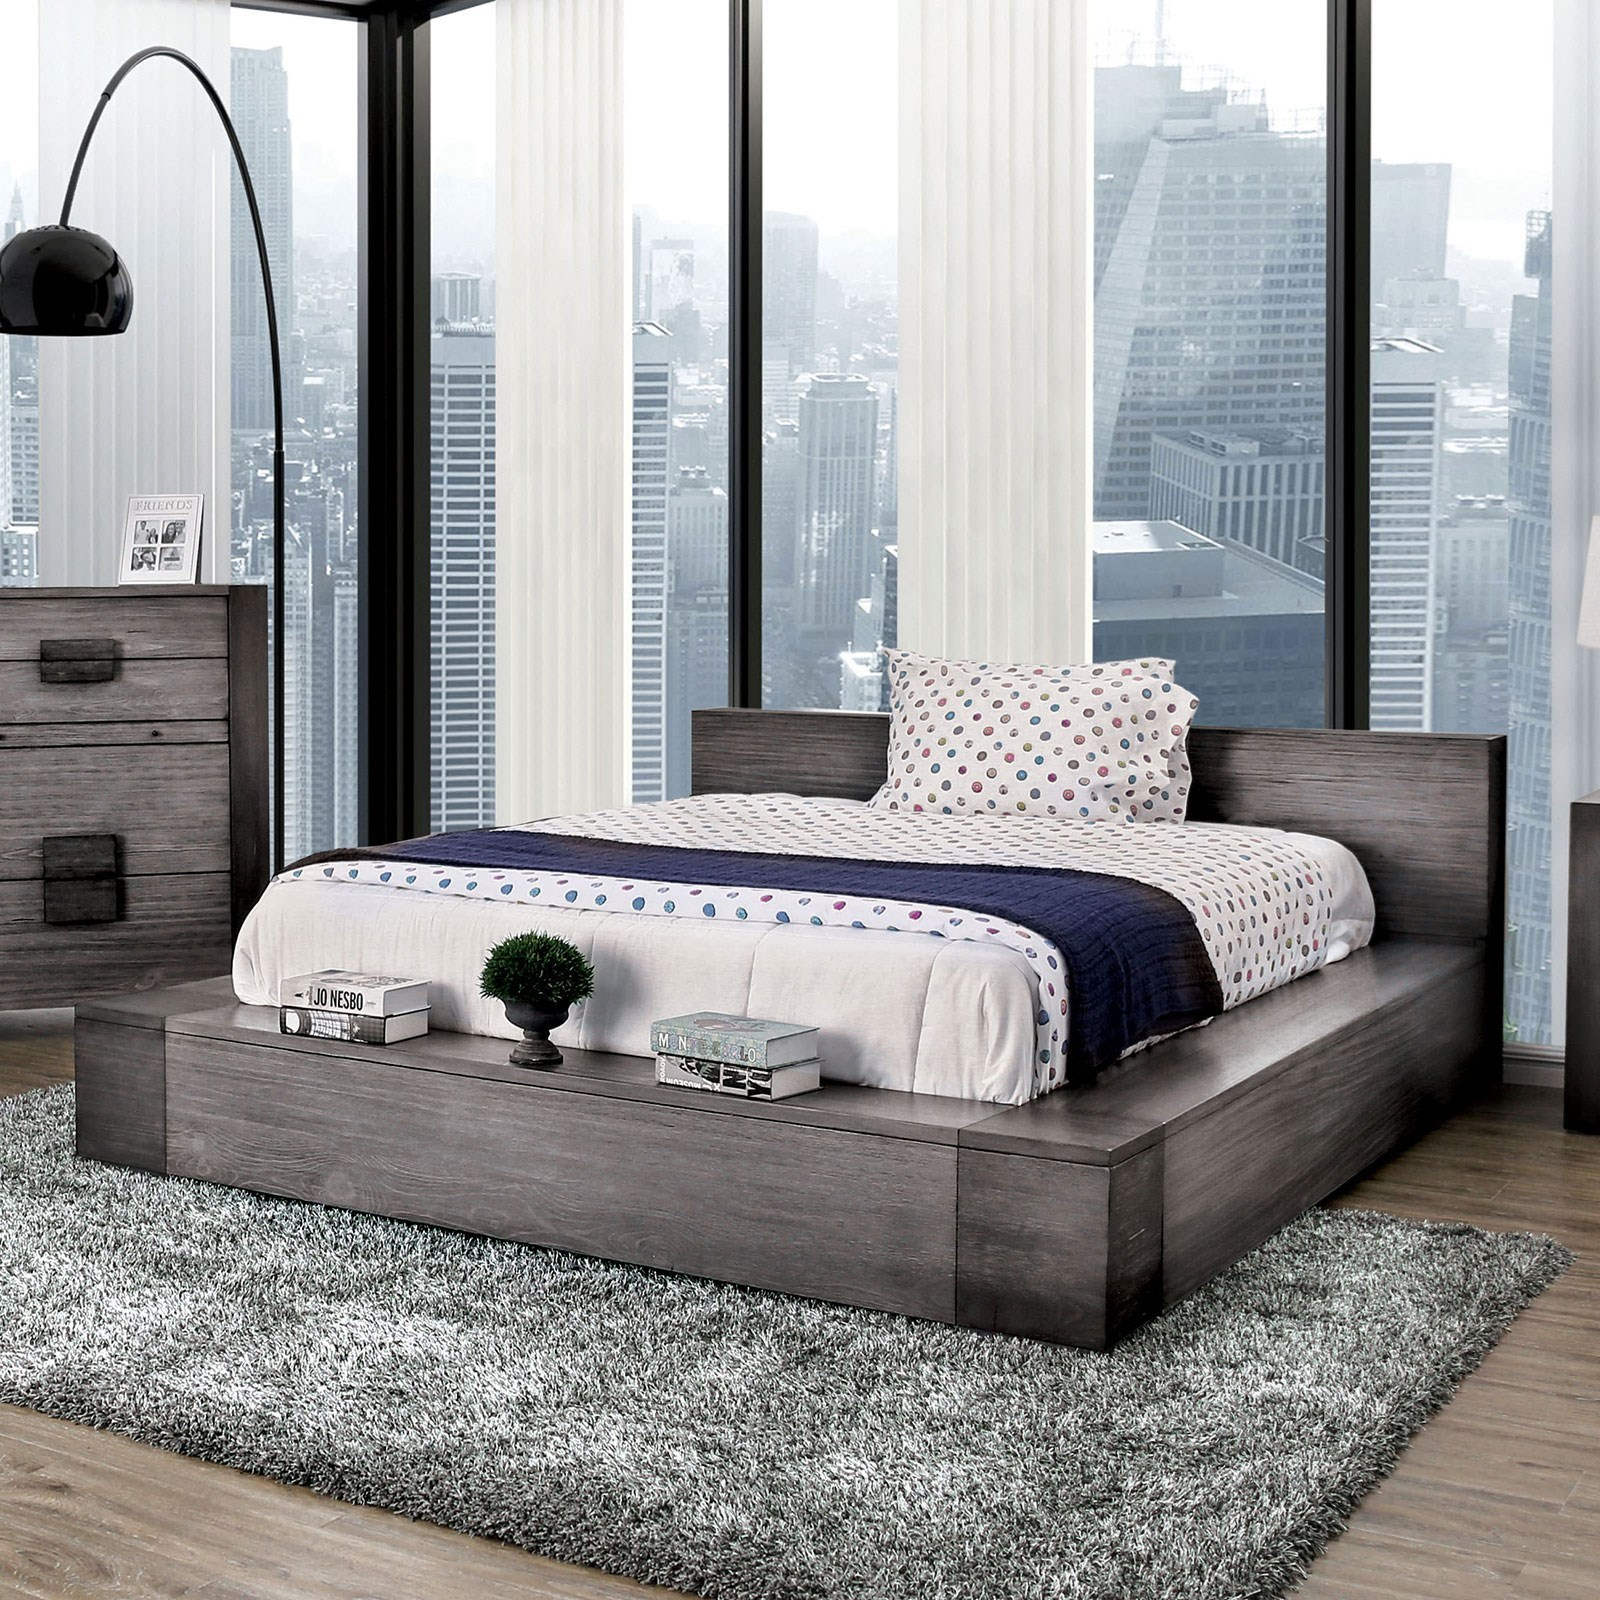 Janeiro California King Bed at Household Furniture